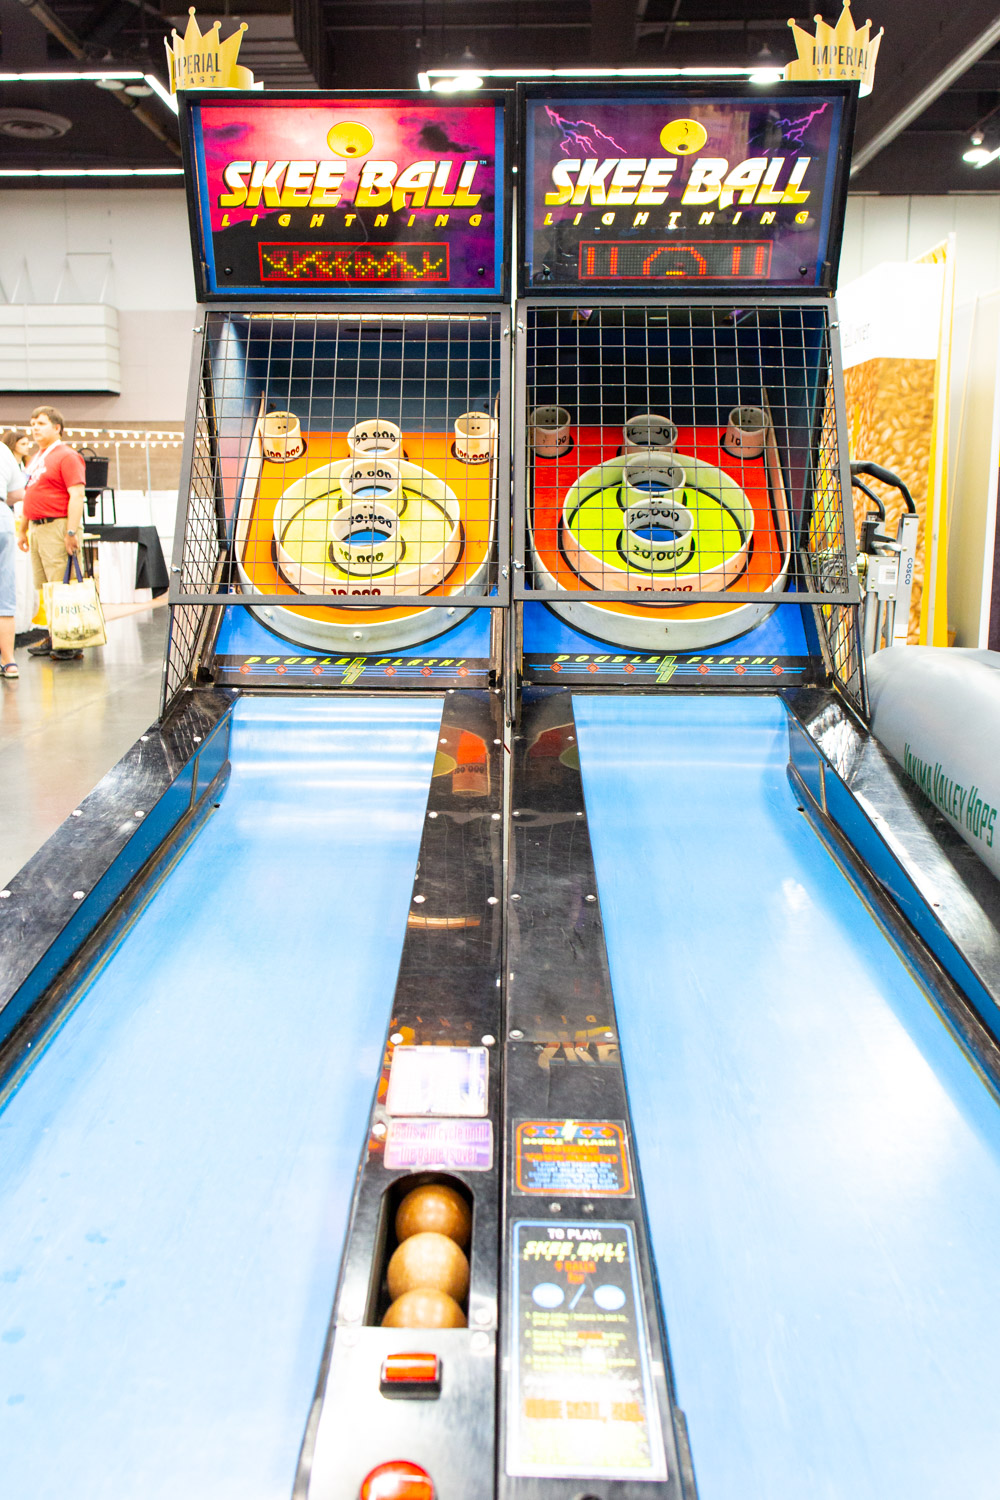 Skee ball courtesy of Imperial Yeast, Mecca Grade Malt, and Yakima Valley Hops